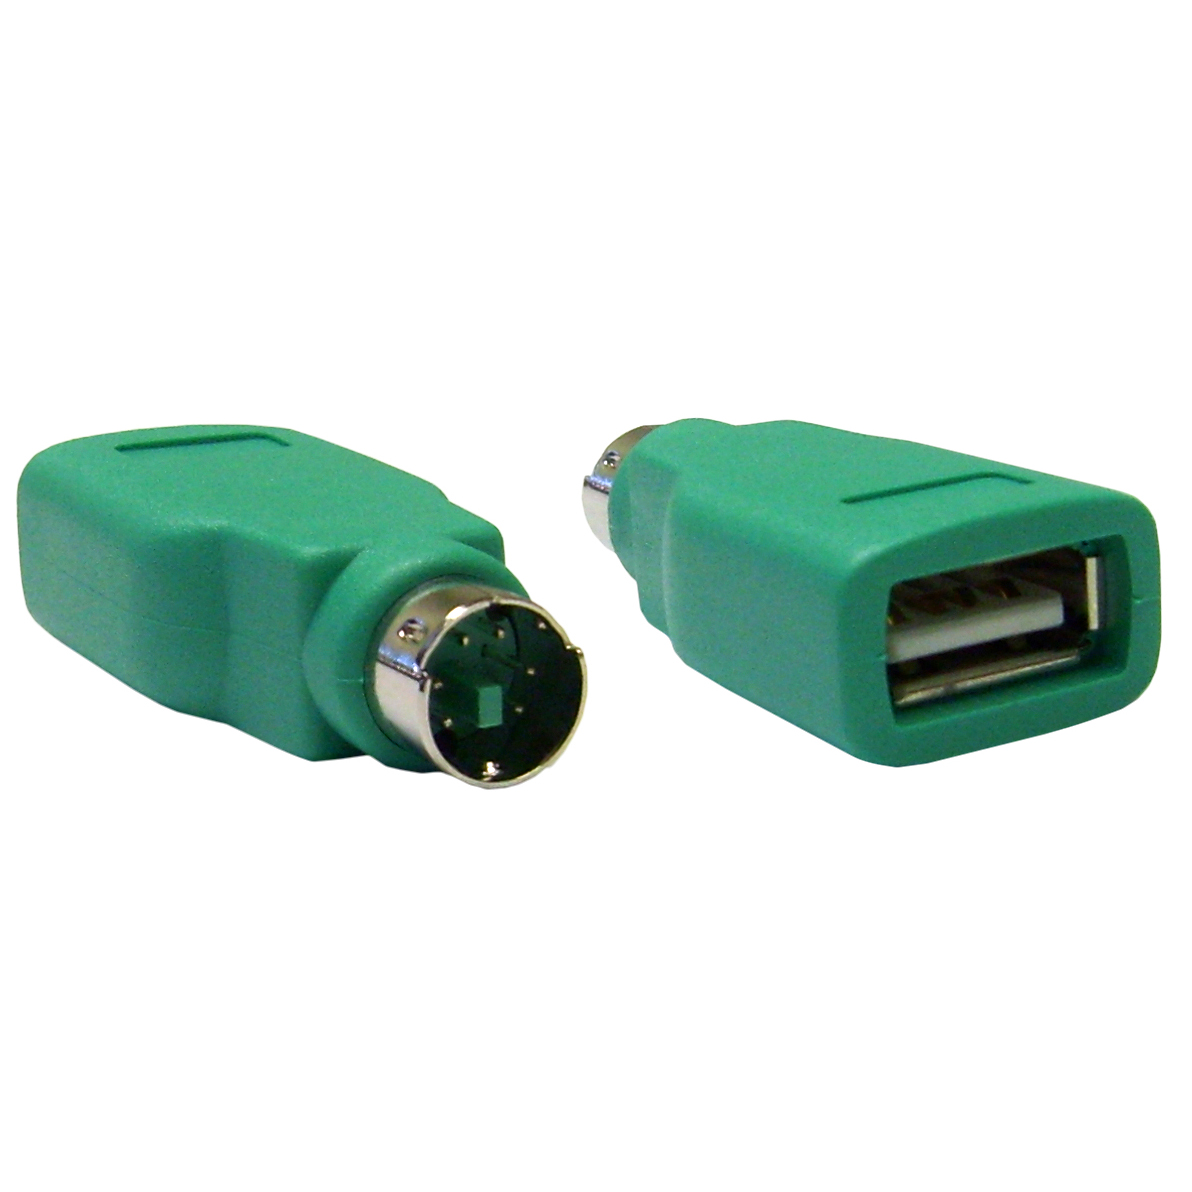 green usb to ps 2 keyboard mouse adapter rh cablewholesale com USB to PS2 Pinout USB to PS2 Pinout